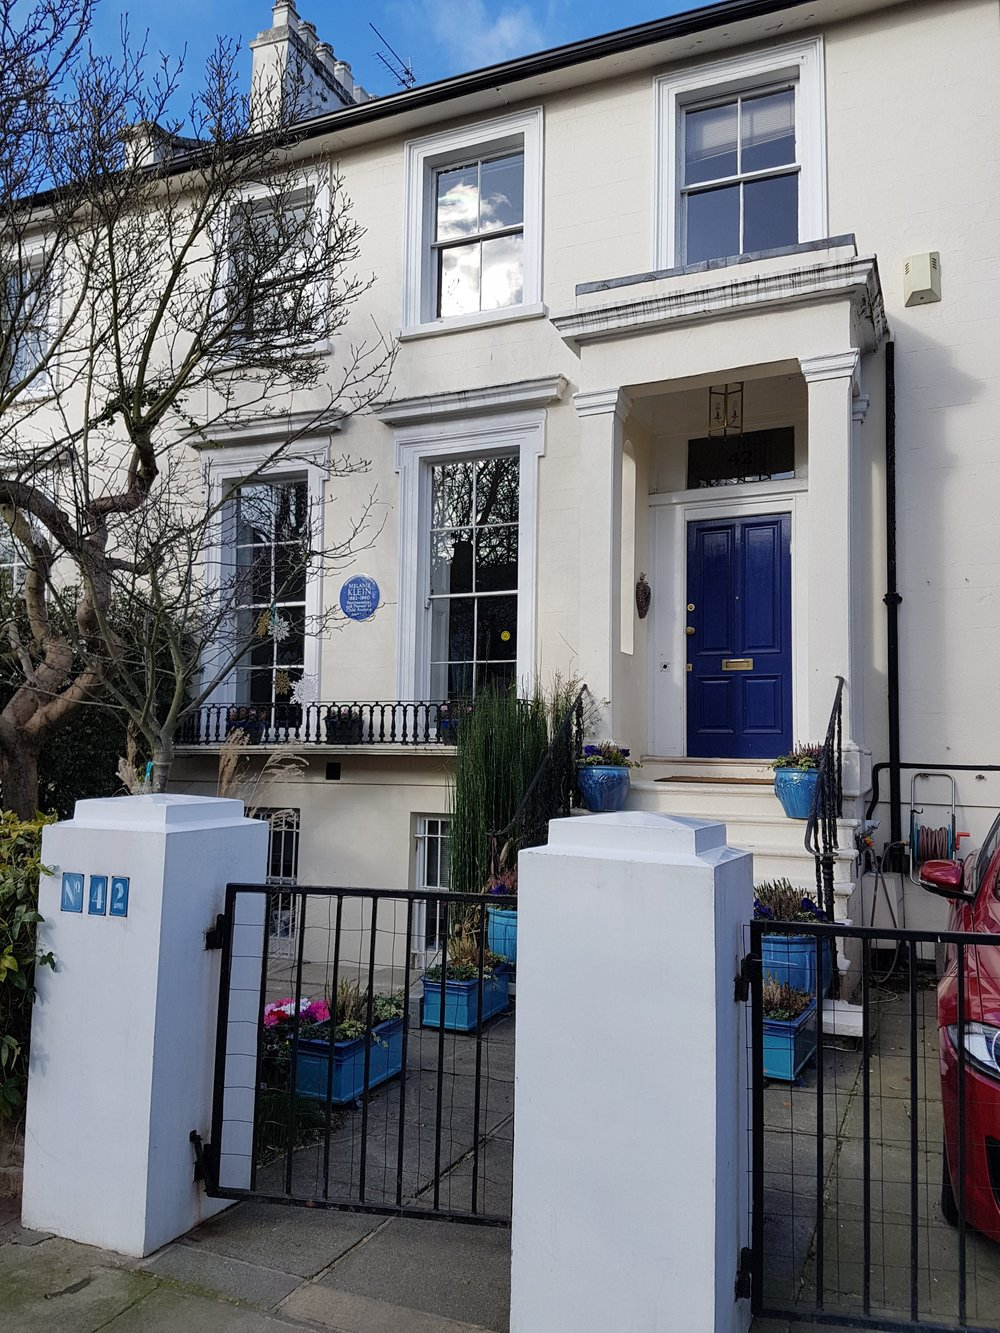 Melanie Klein's home - including a very strategically placed bench for a very welcome rest